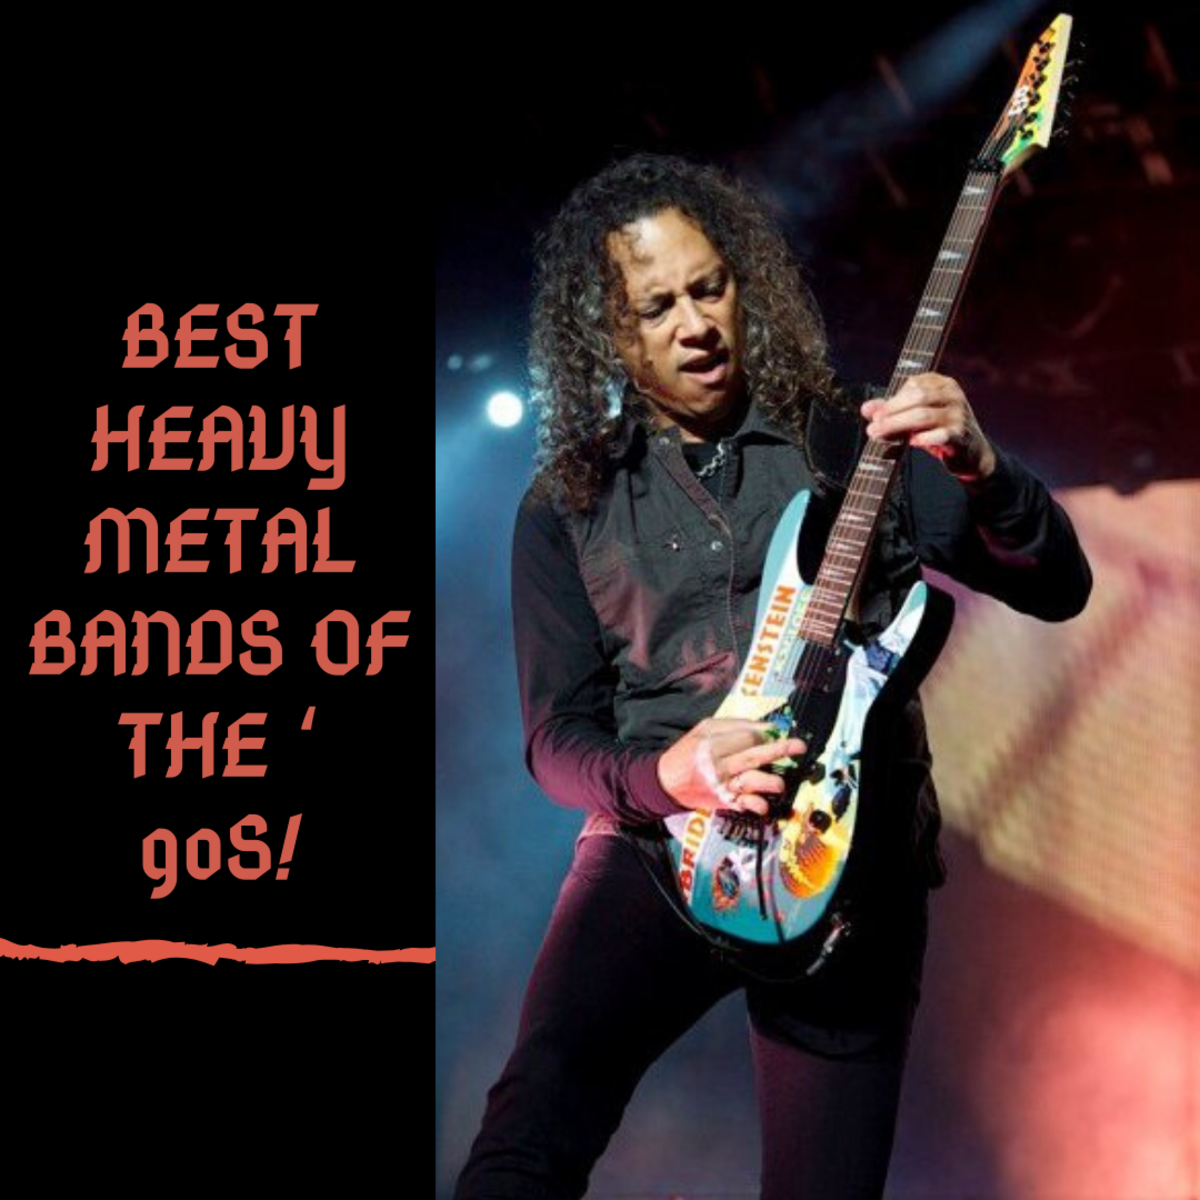 100 Best Heavy Metal Bands of the '90s